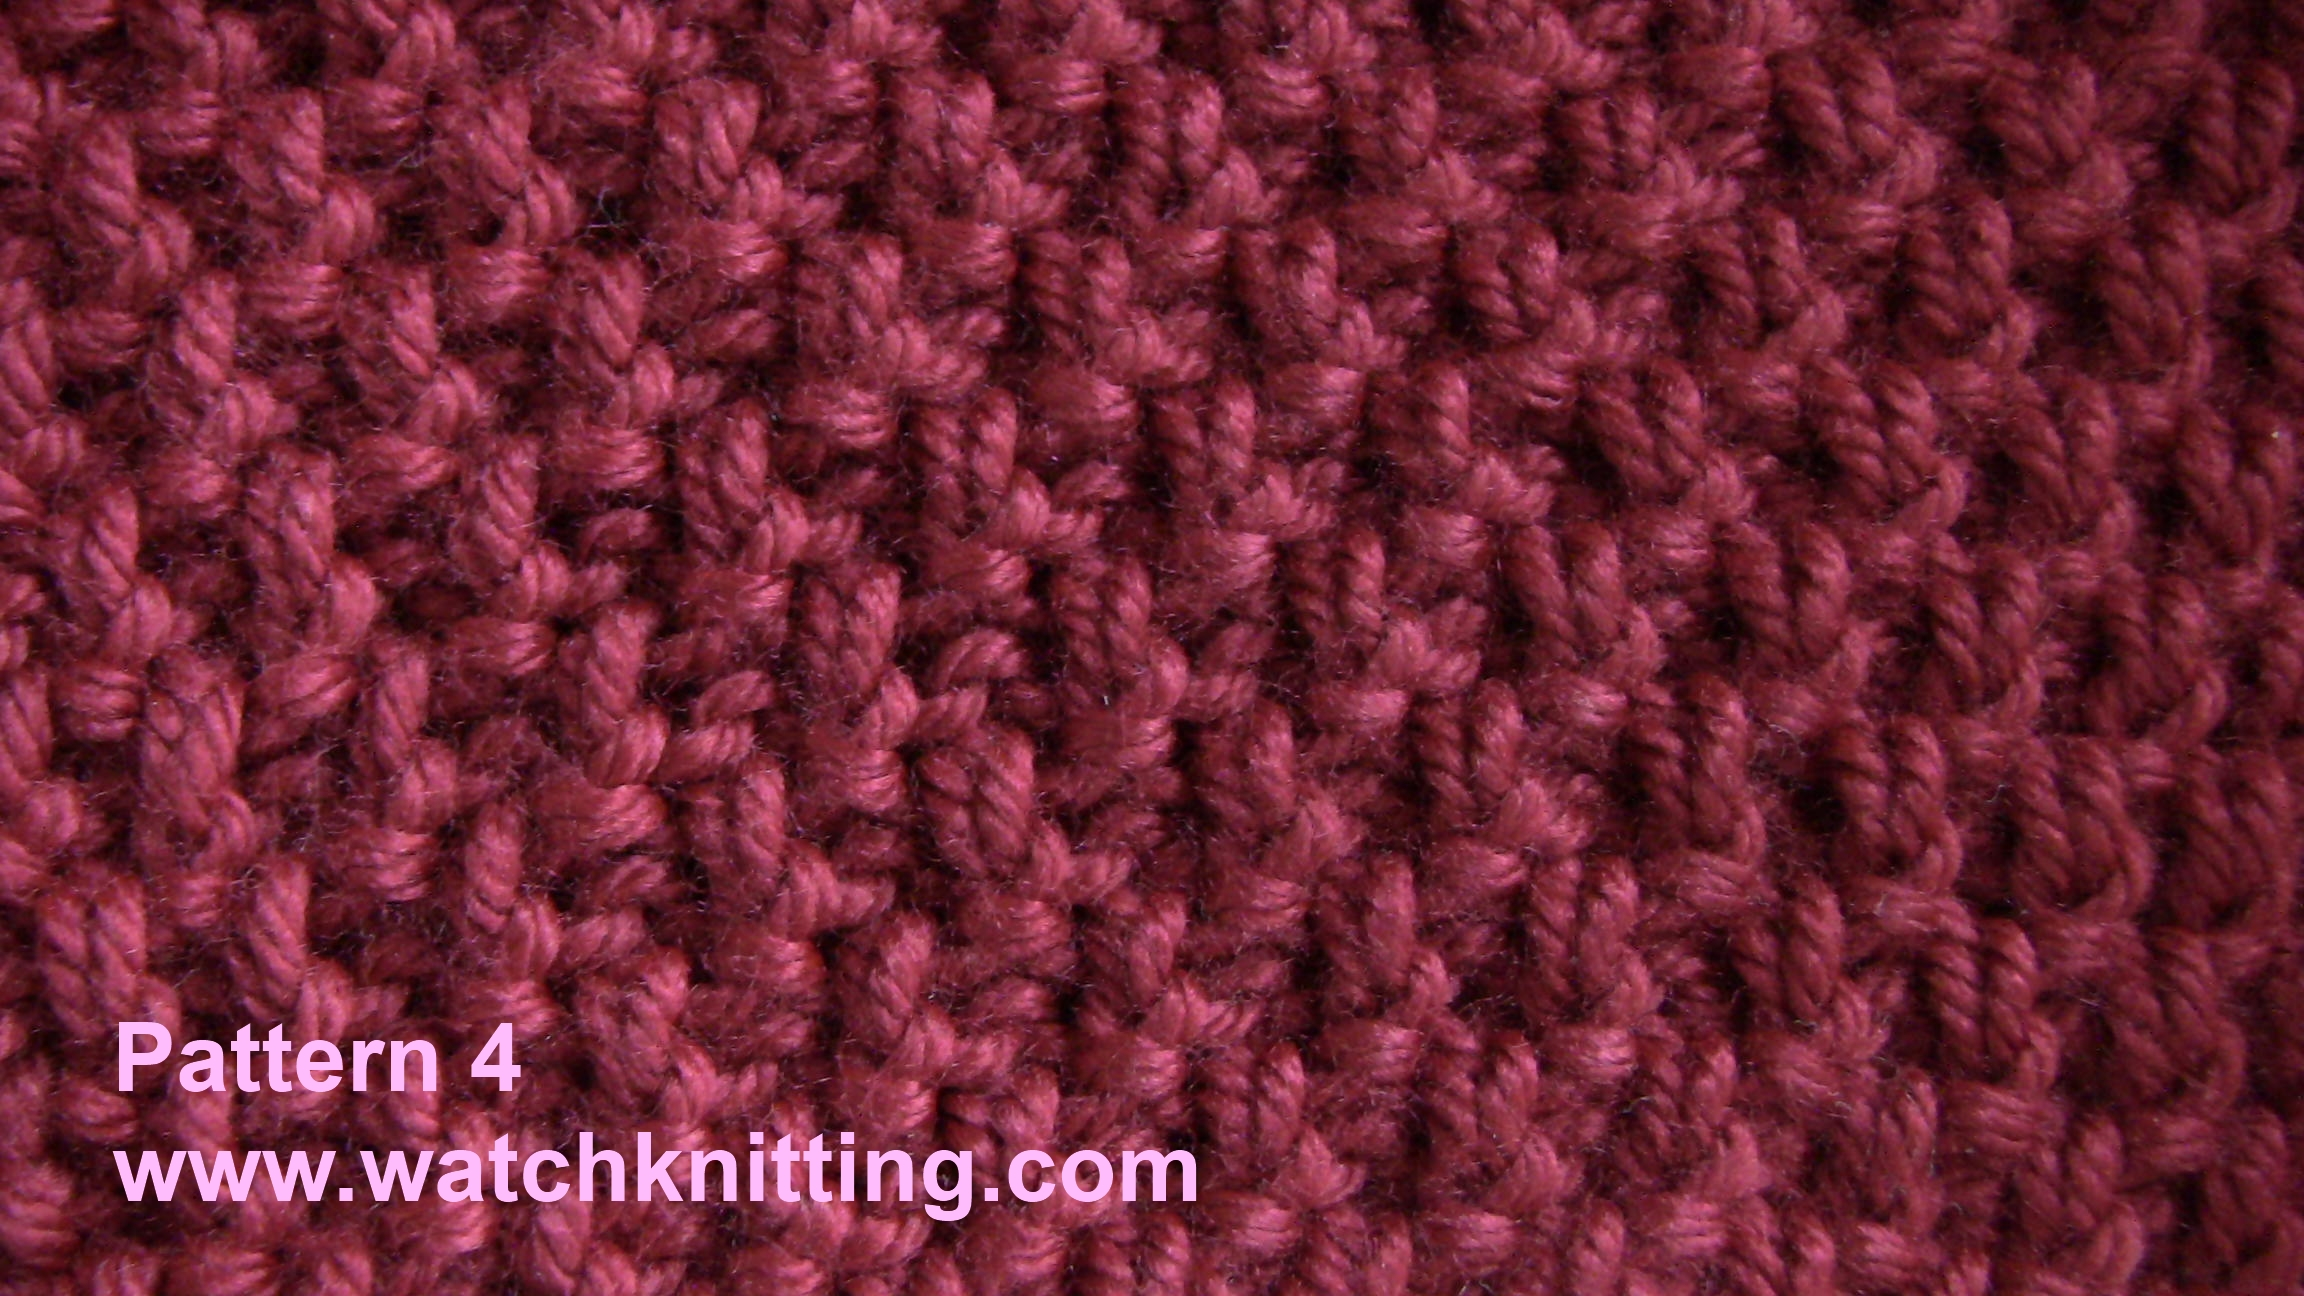 Knitting Instructions : cobblestones knitting stitch pattern free 1 ? Knitting Bee